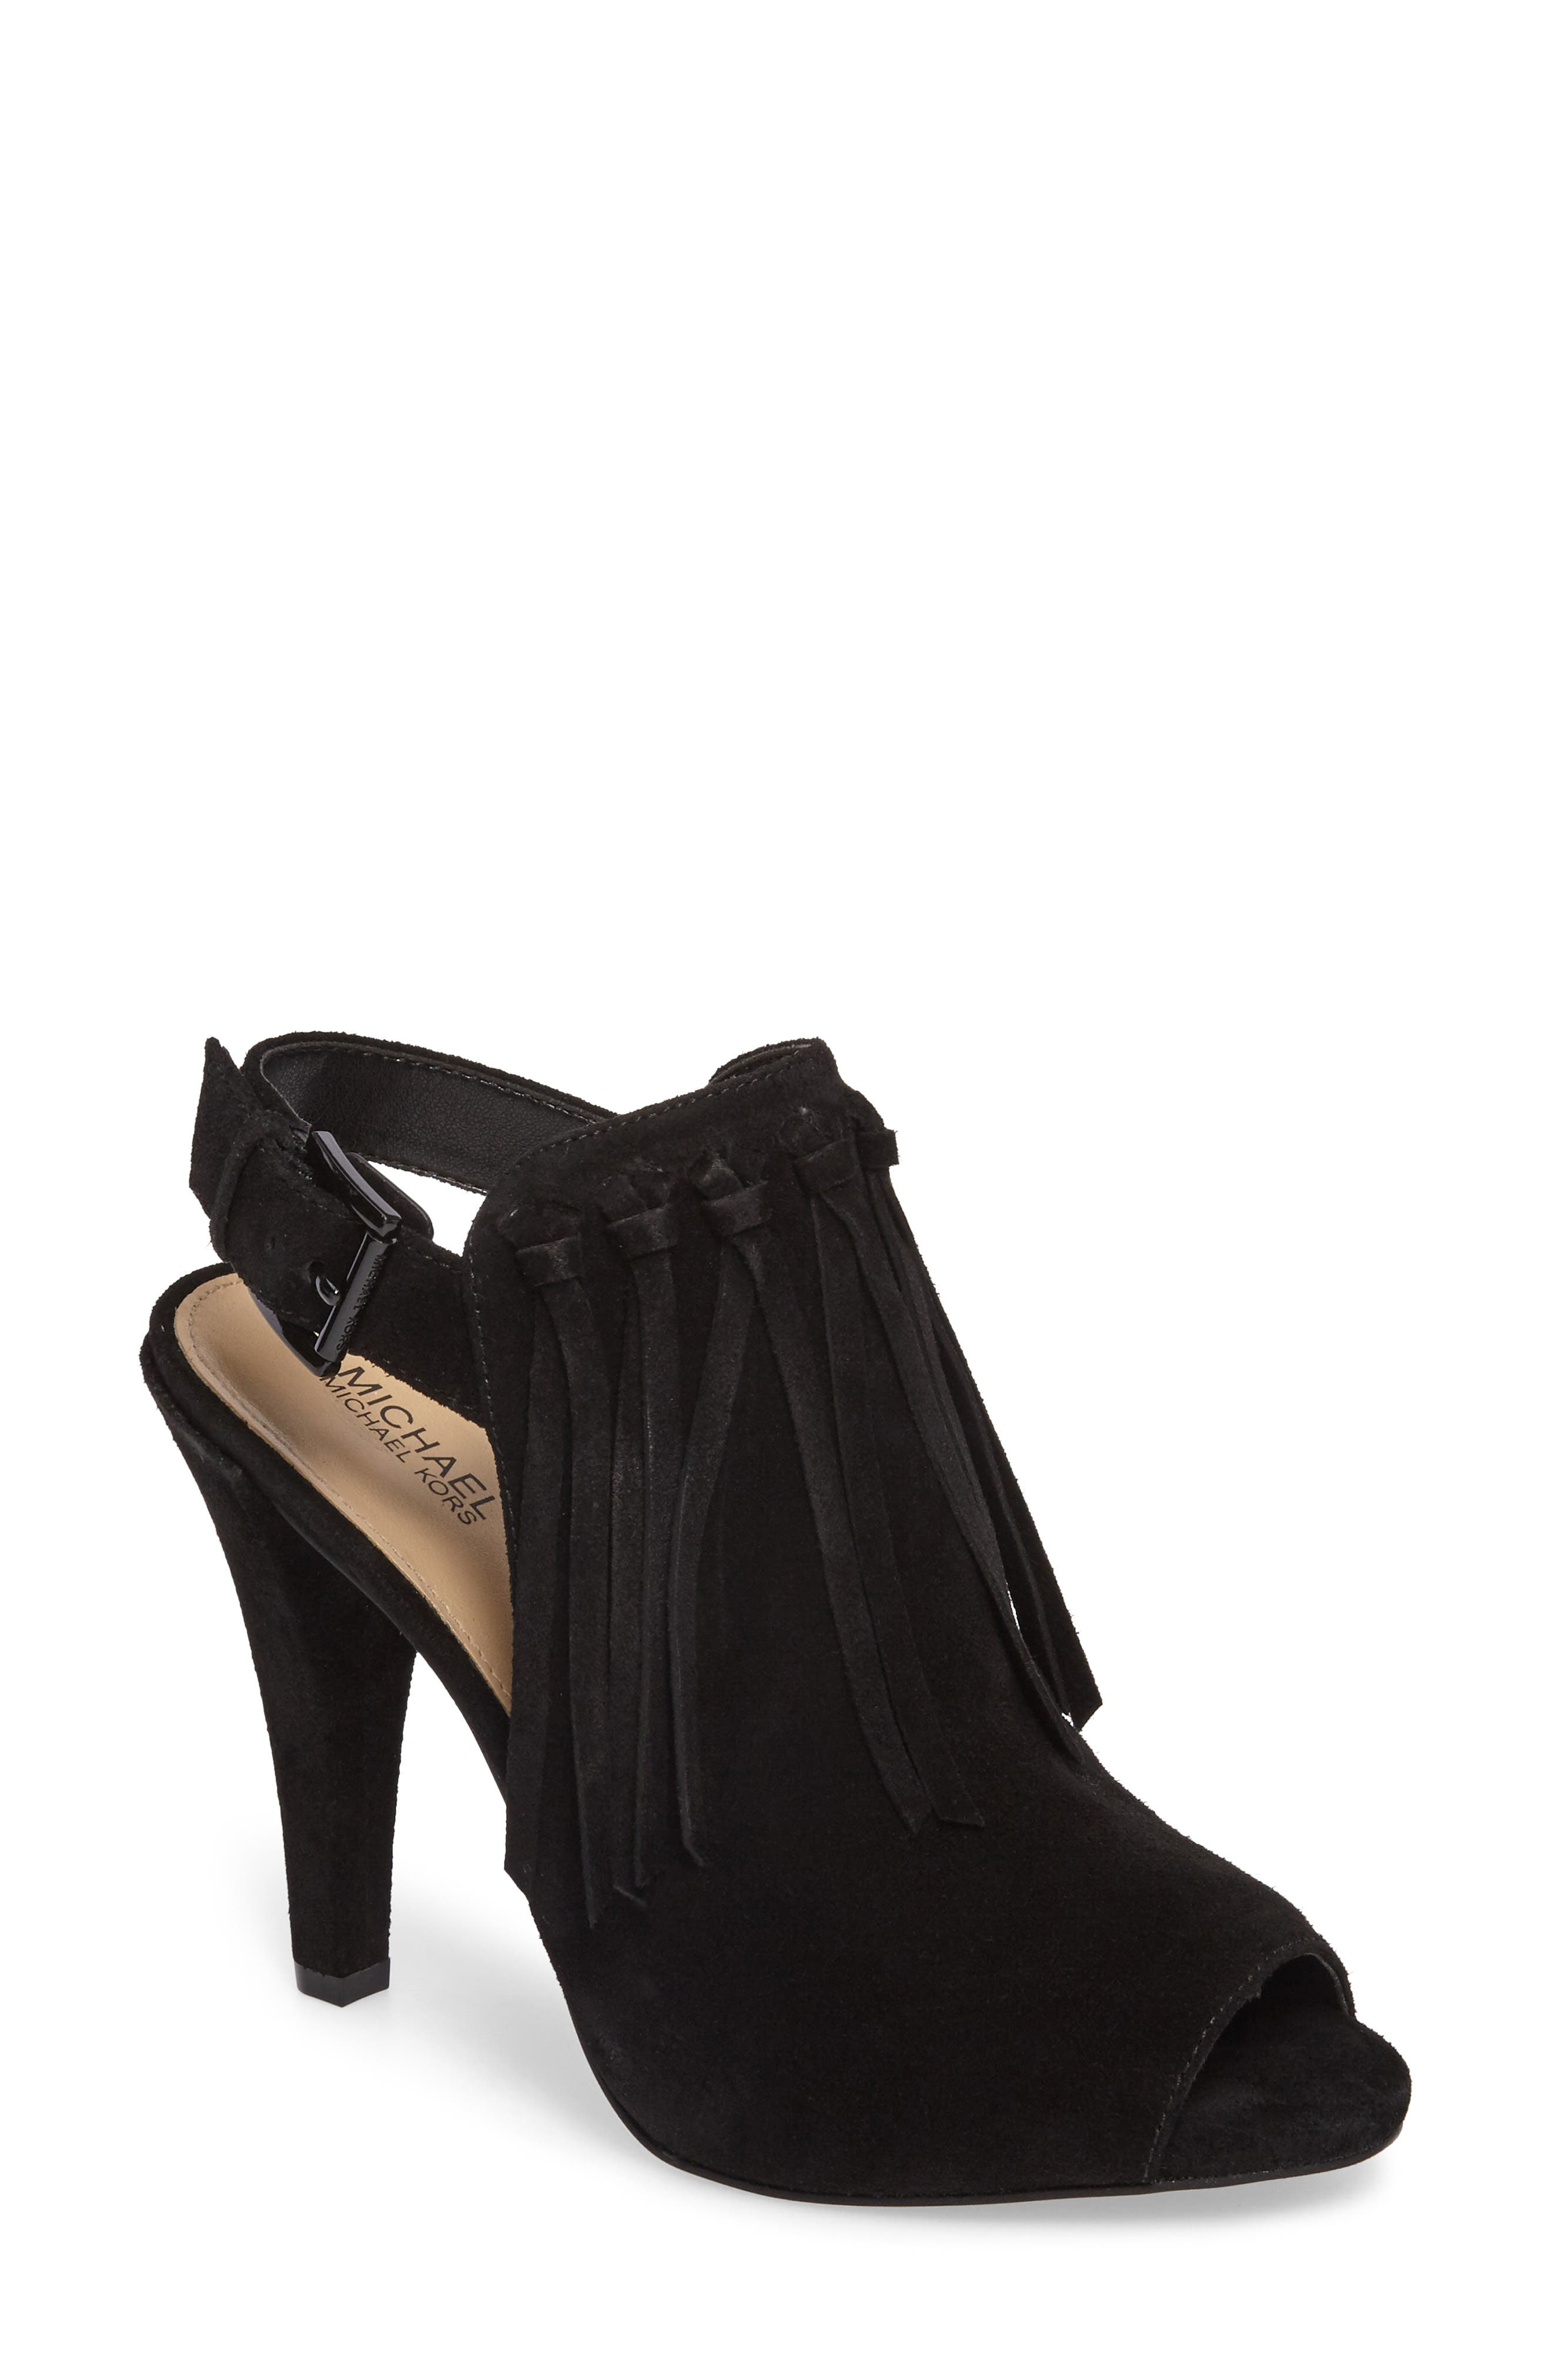 Kassidy Open Toe Bootie,                             Main thumbnail 1, color,